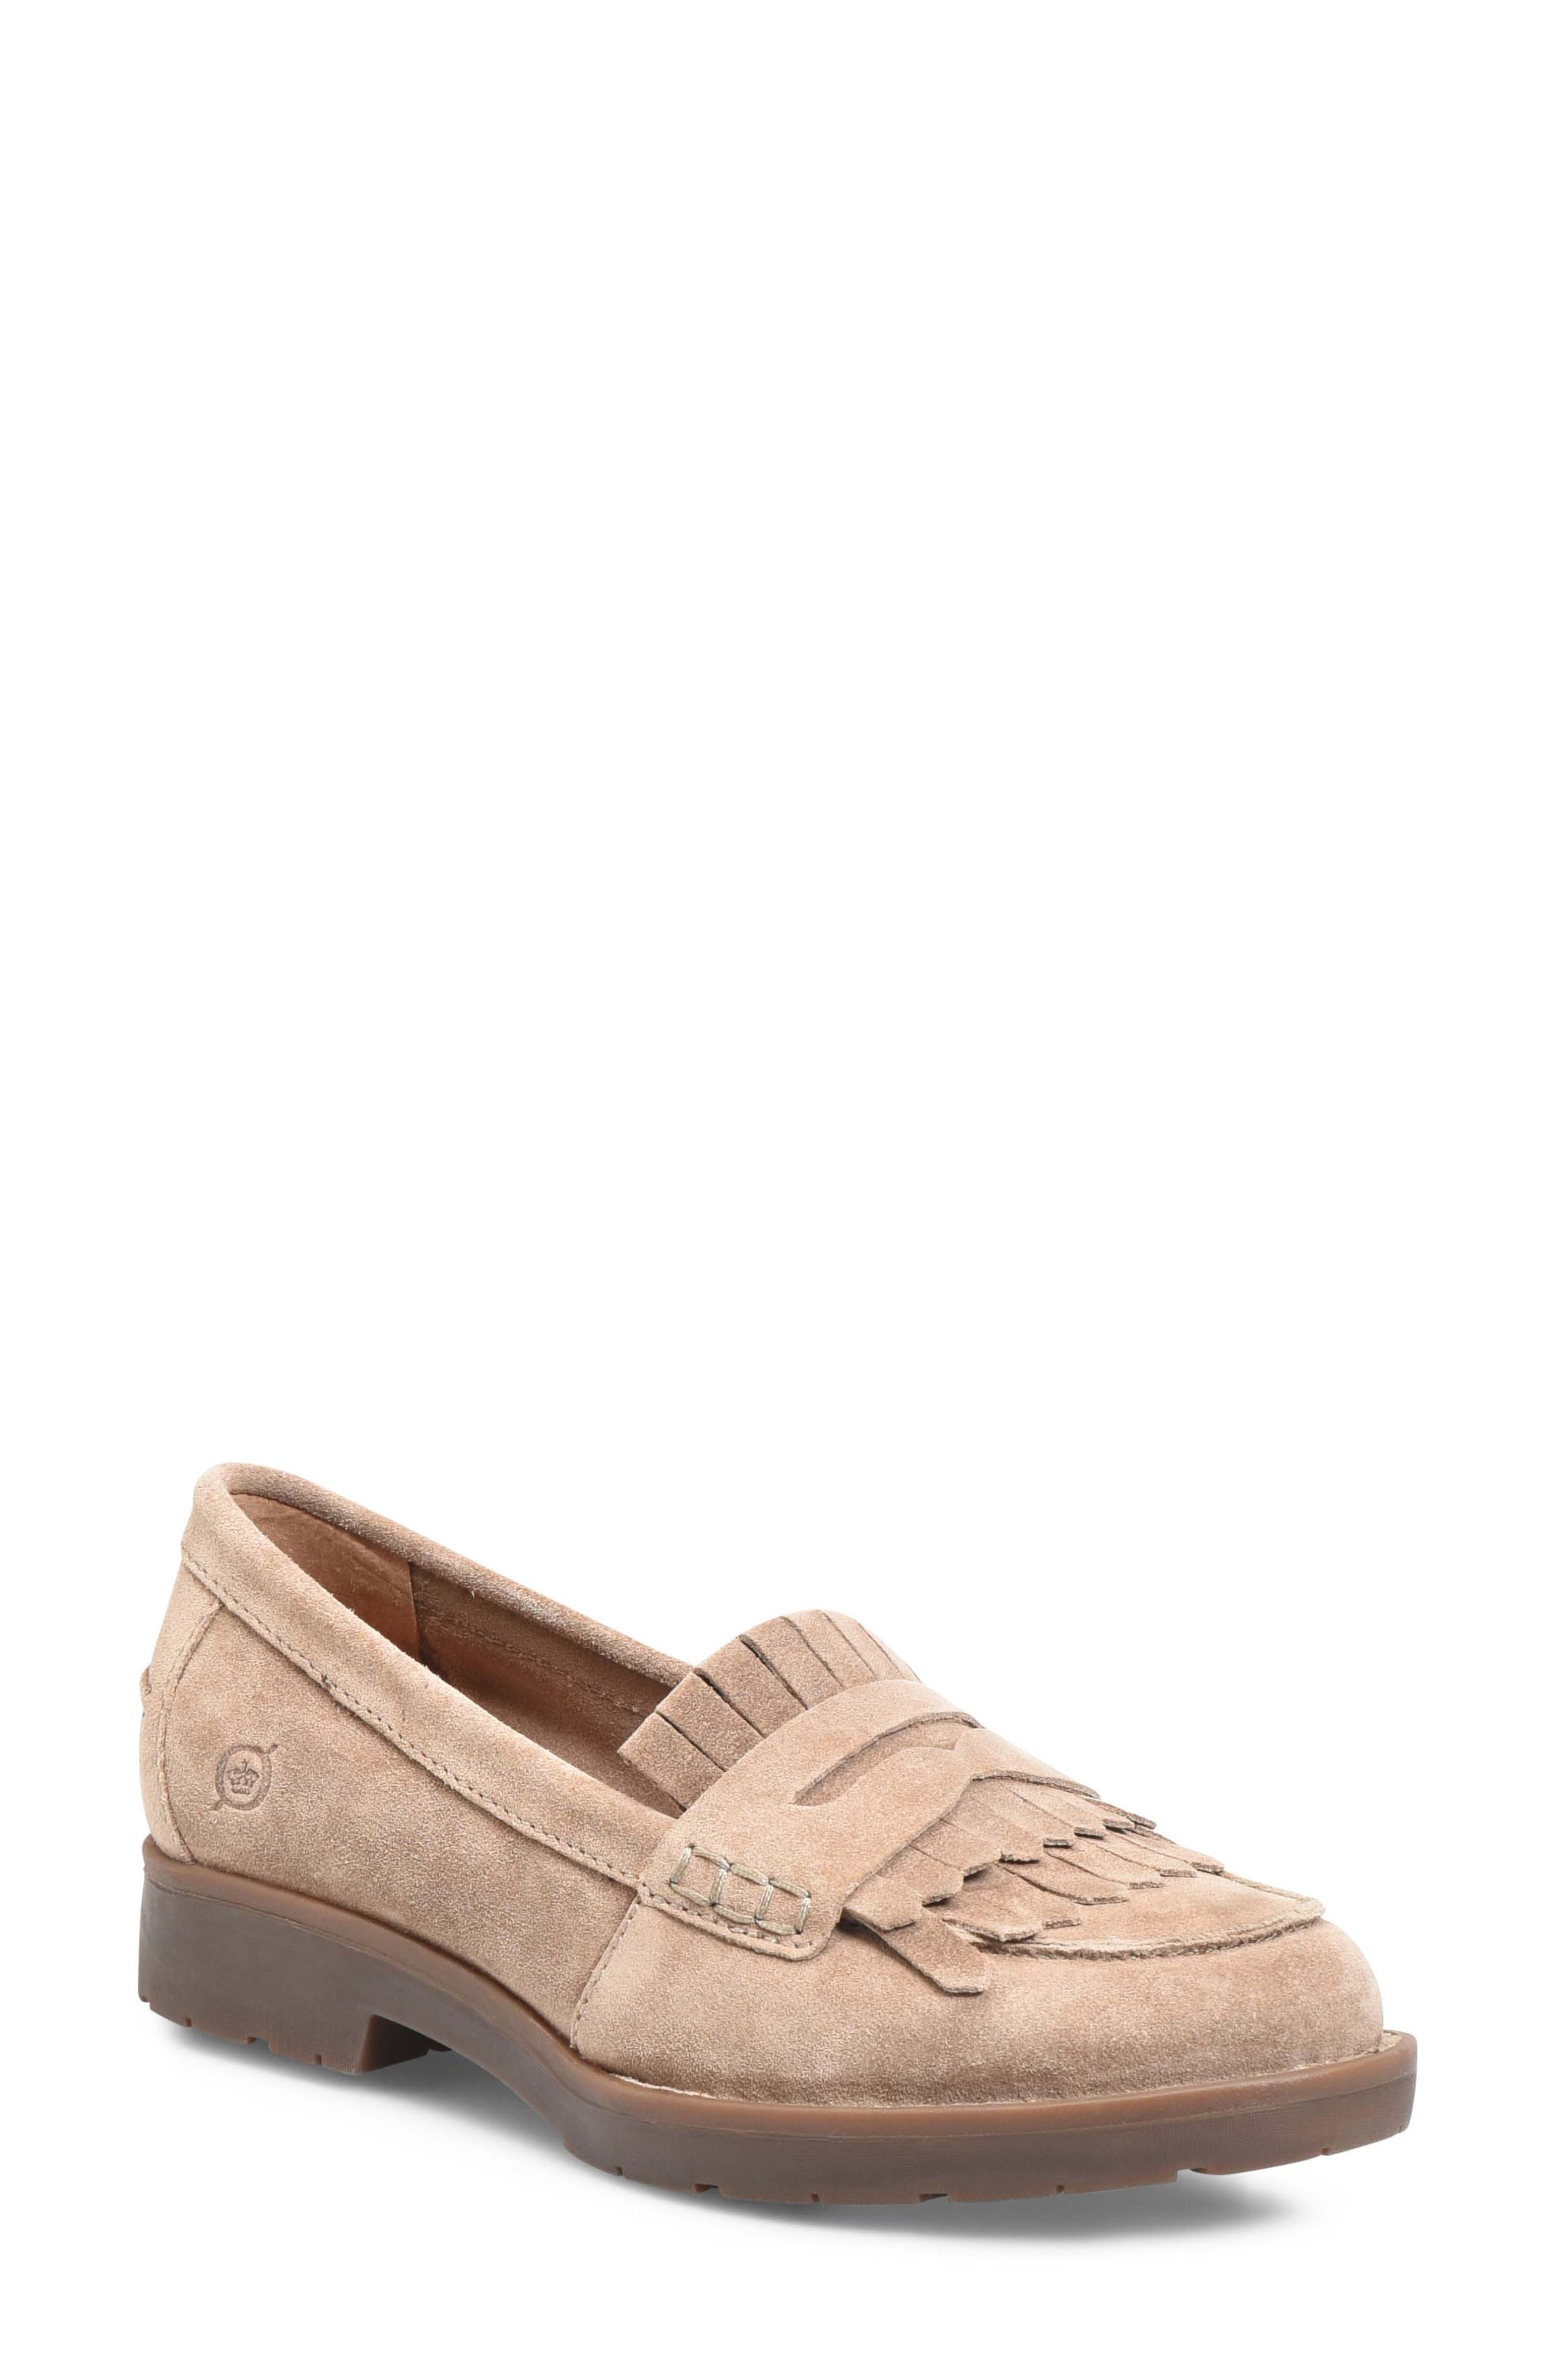 Lorens Loafer,                             Main thumbnail 1, color,                             TAUPE SUEDE